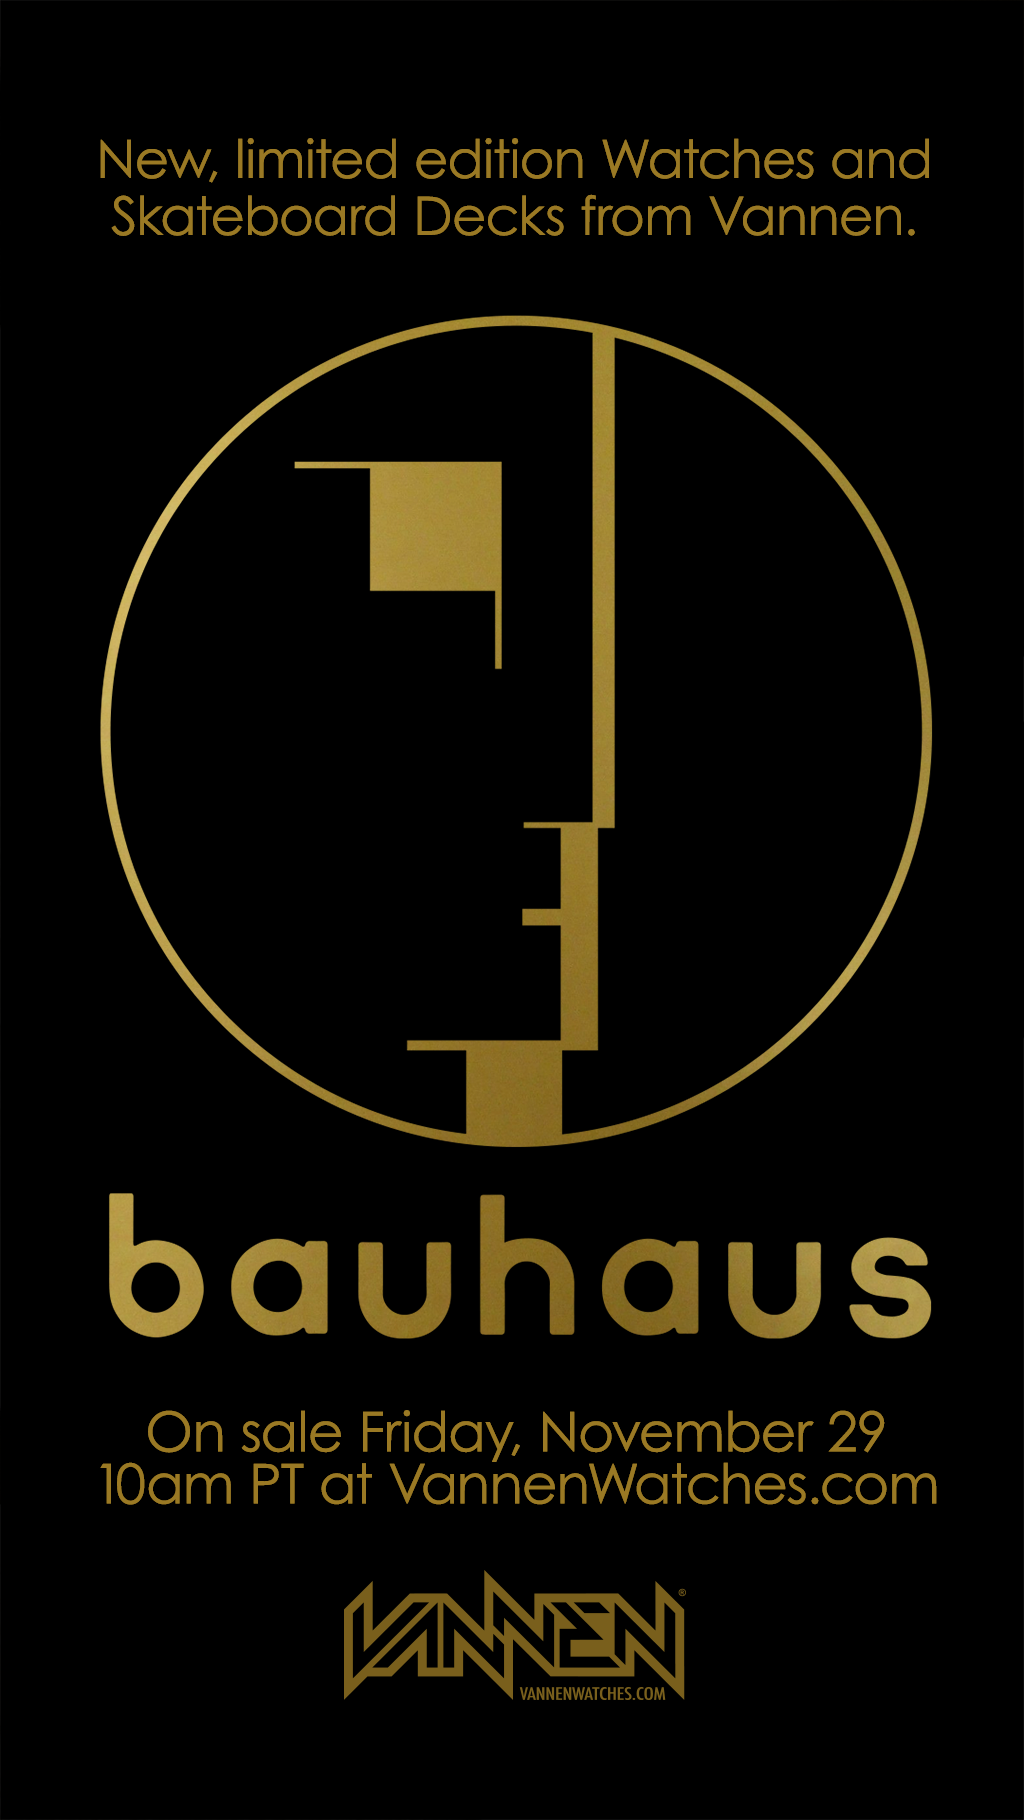 Announcement for new Vannen x Bauhaus Watches and Skateboard Decks